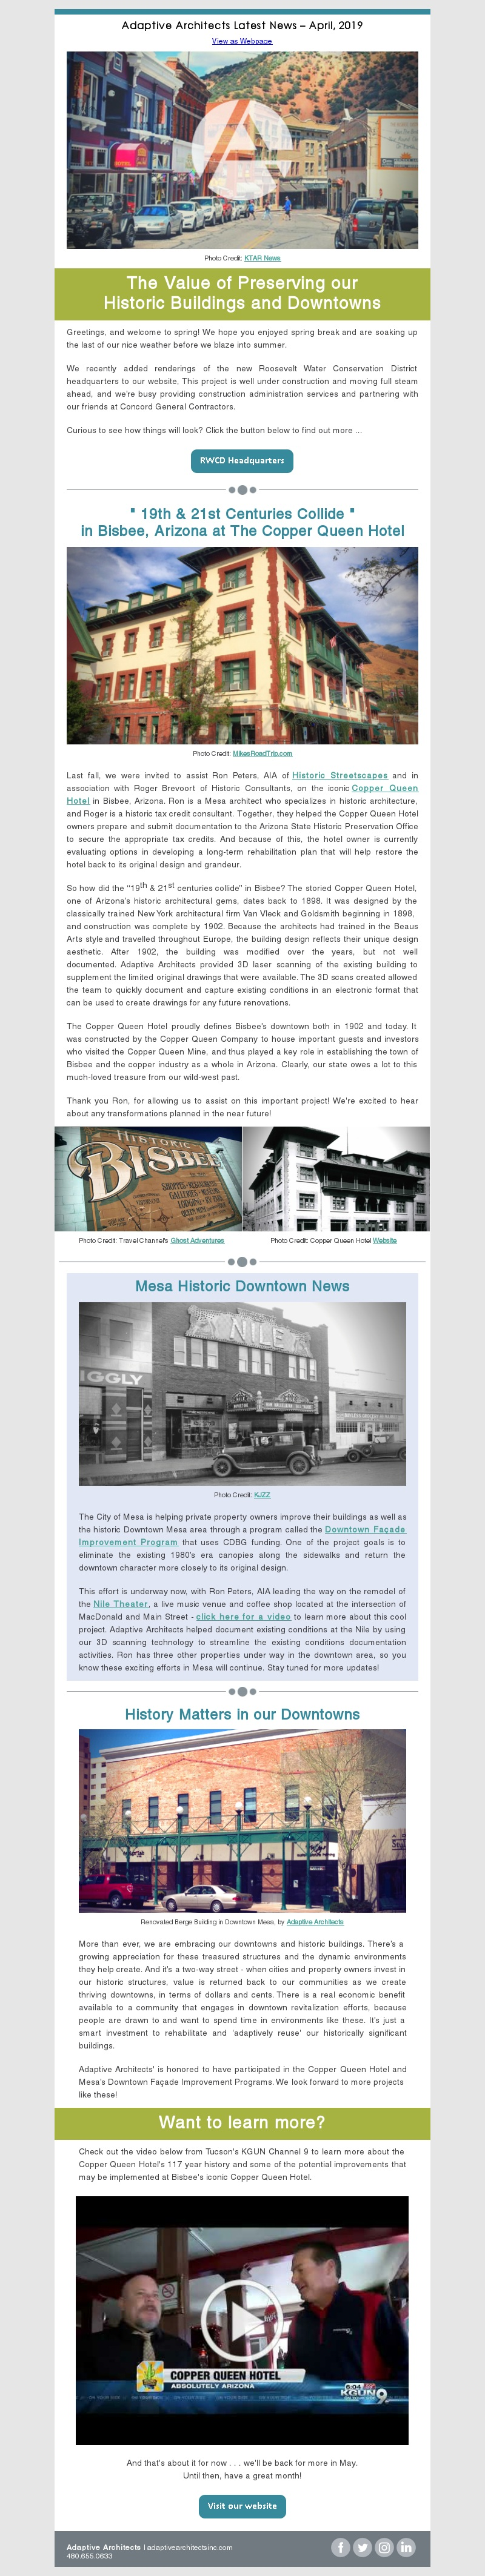 Image of Adaptive Architect's April 2019 Newsletter, 'New Tech in the Old West'